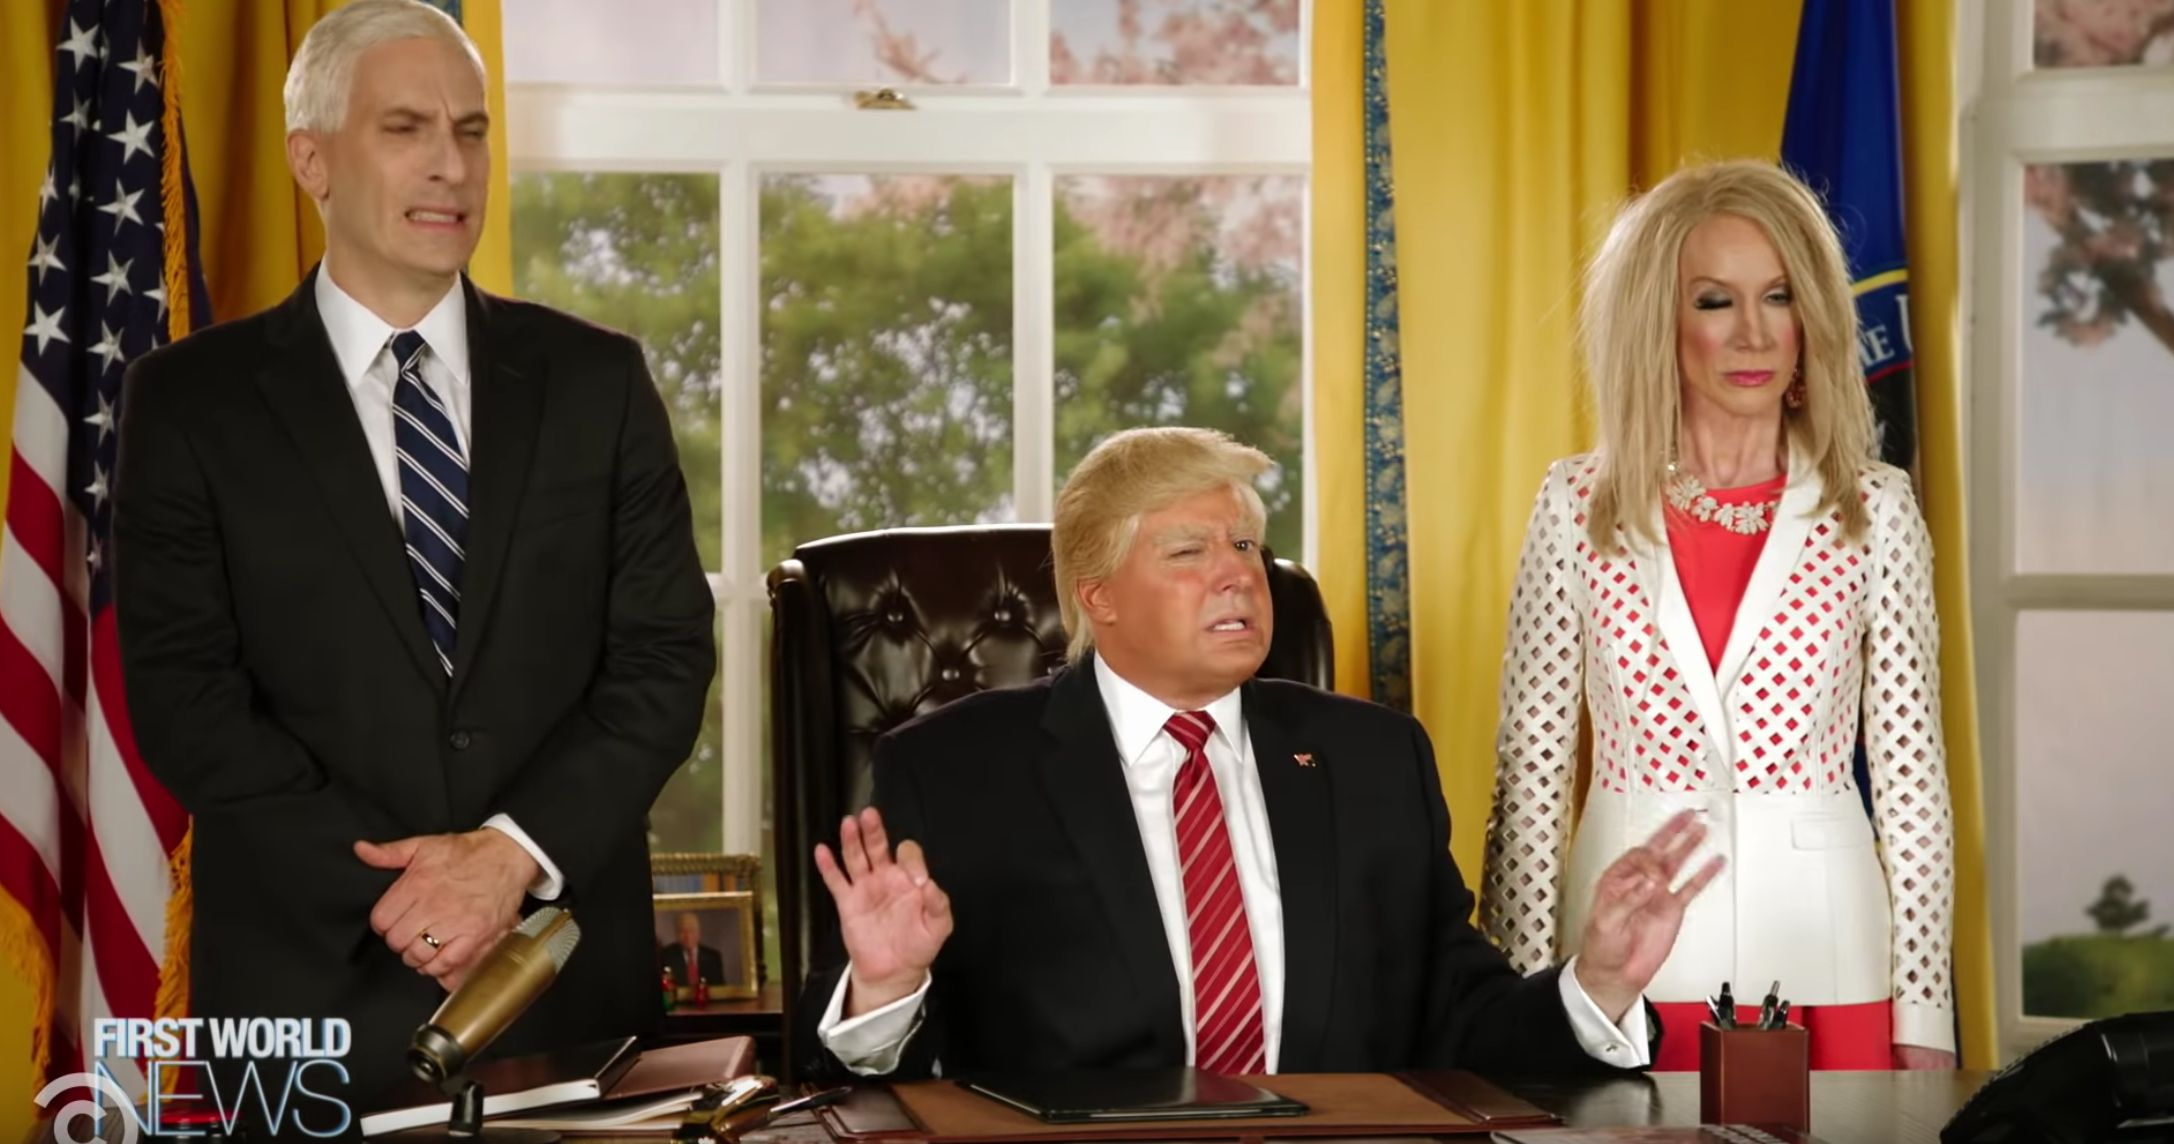 'The President Show' Looks At The Fall Of Donald Trump In The Year